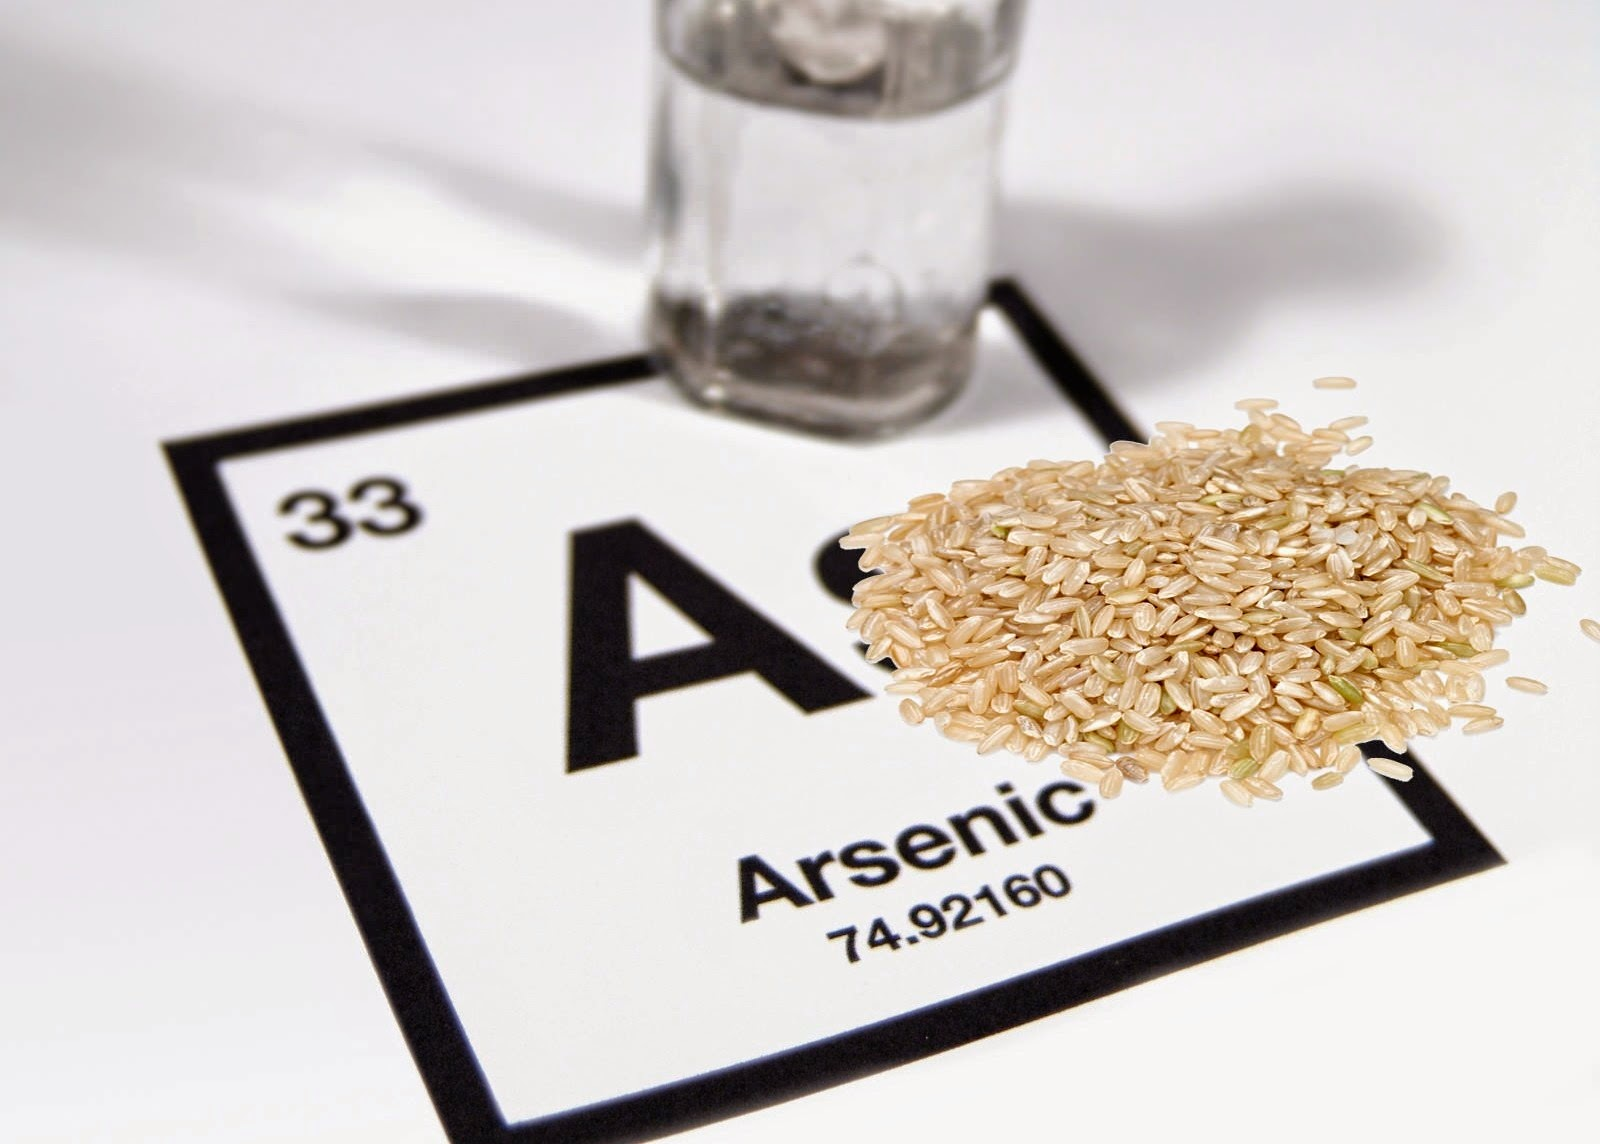 http://www.cbsnews.com/news/arsenic-traces-in-rice-cause-health-worries/